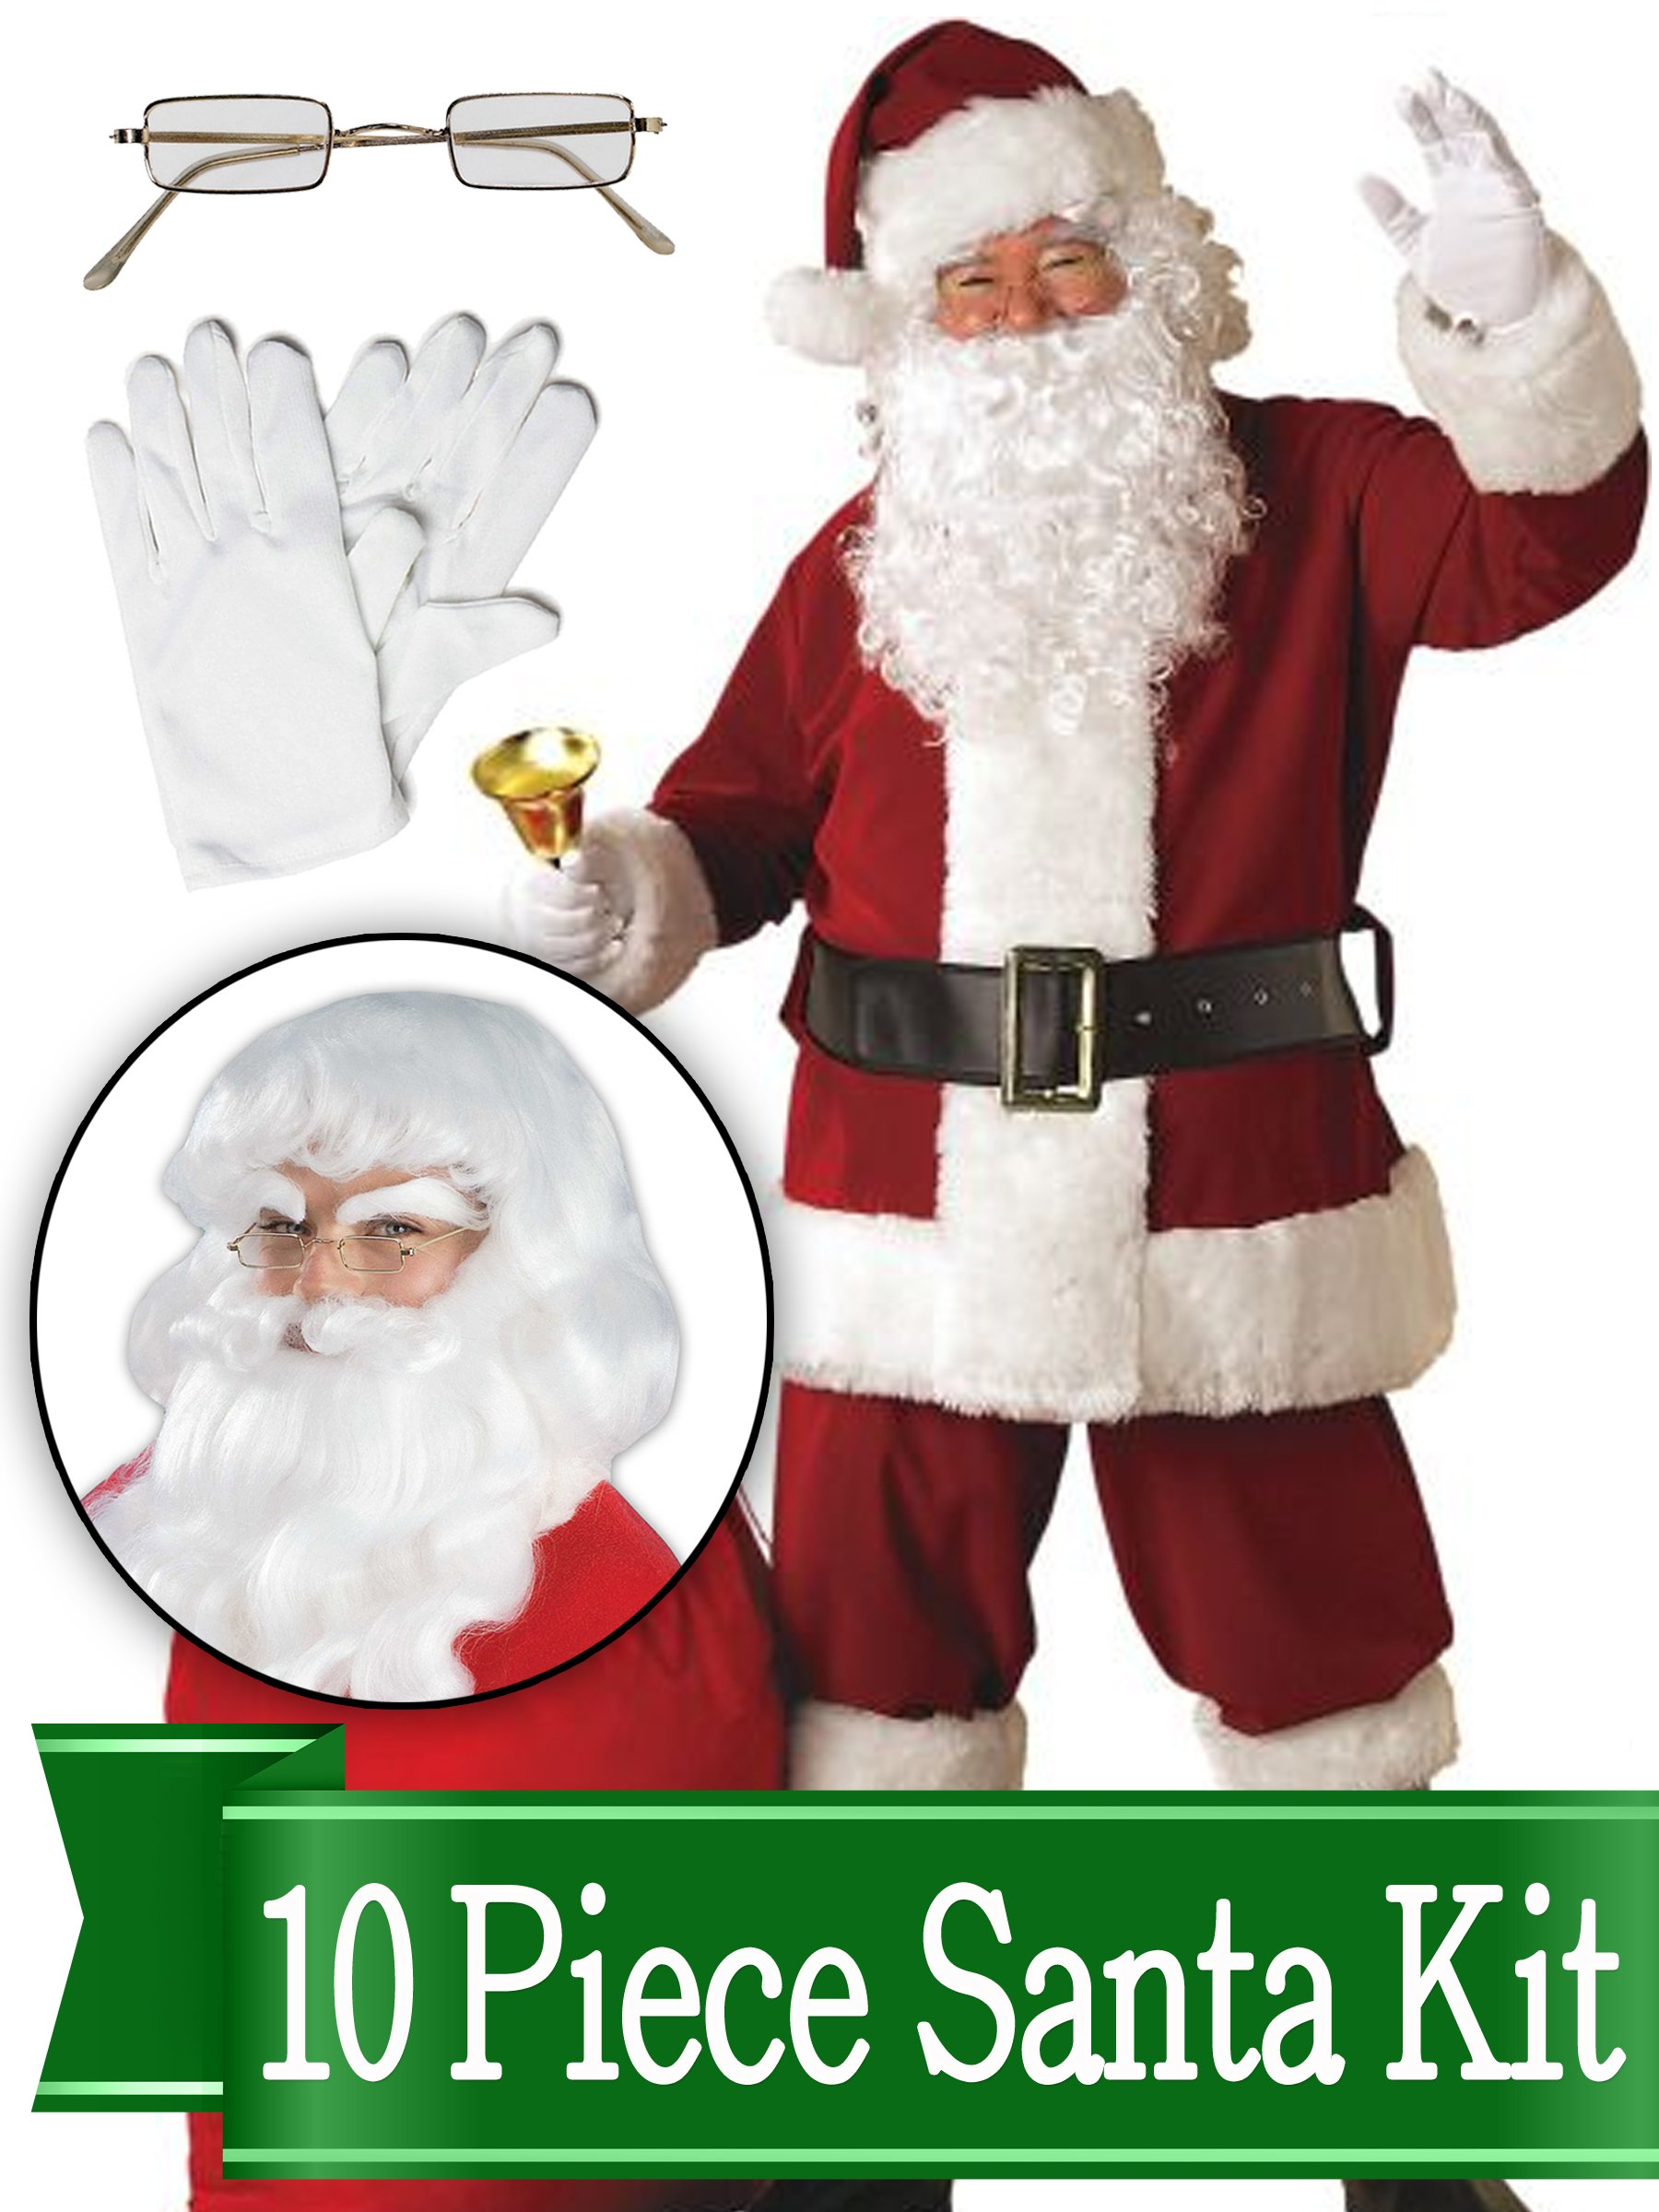 Santa Suit – Crimson Deluxe Complete 10 Piece Kit - Santa Costume Plush Outfit by BirthdayExpress